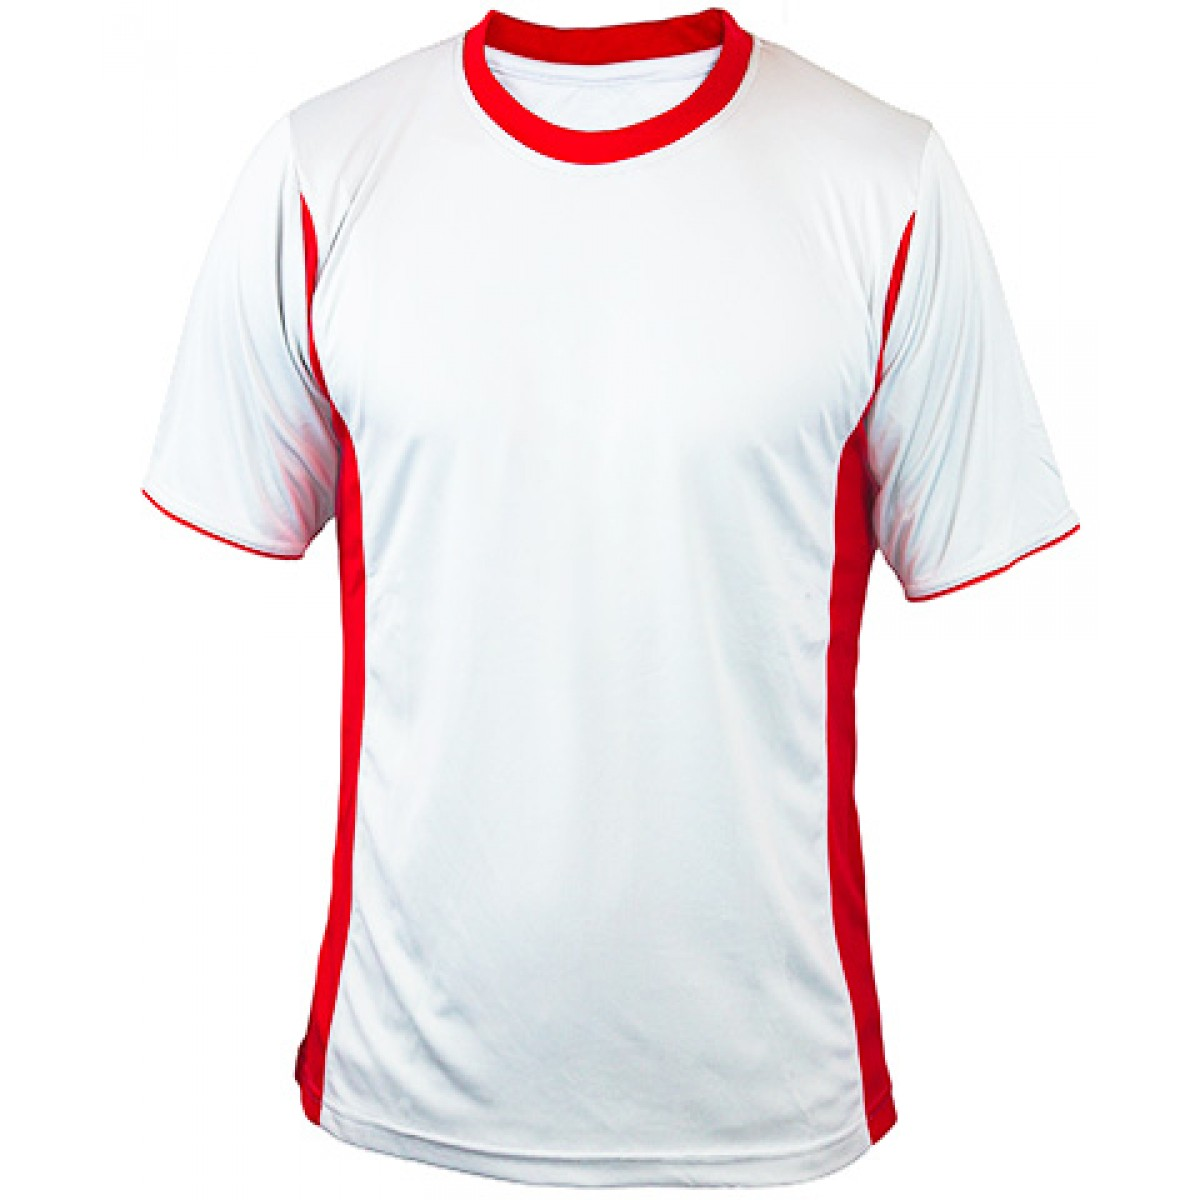 Short Sleeves Performance Fit With Side Insert-Red-S